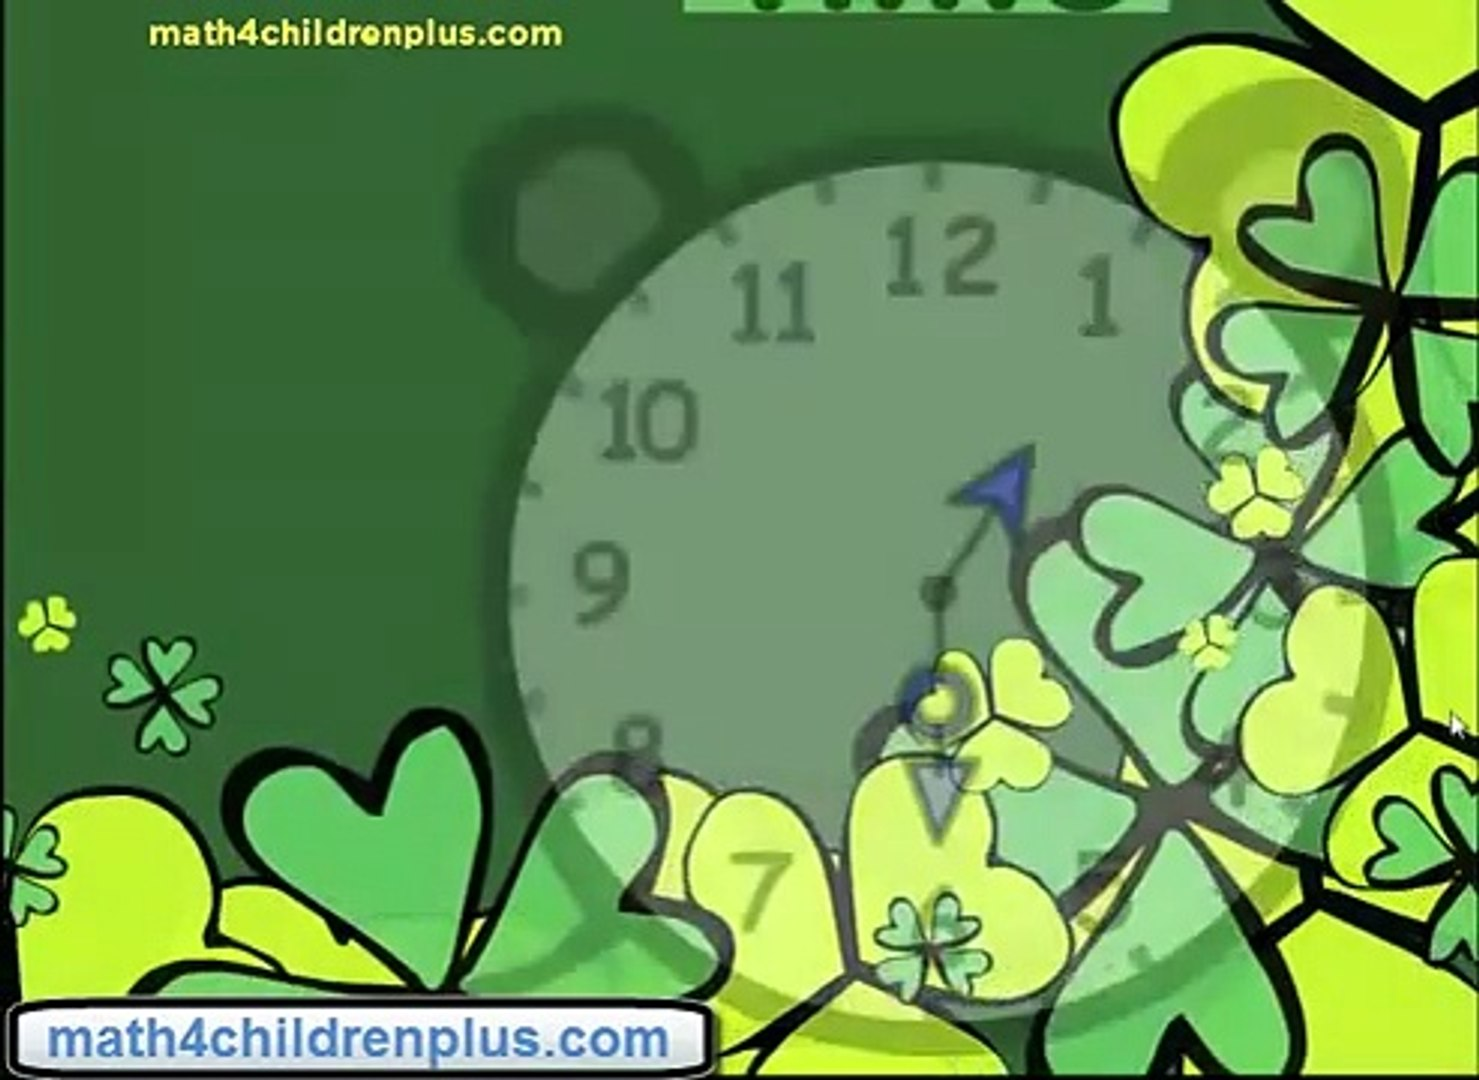 Teach kids how to tell the time at half past the hour e.g. 1:30, 2:30, 3:30 or half past one